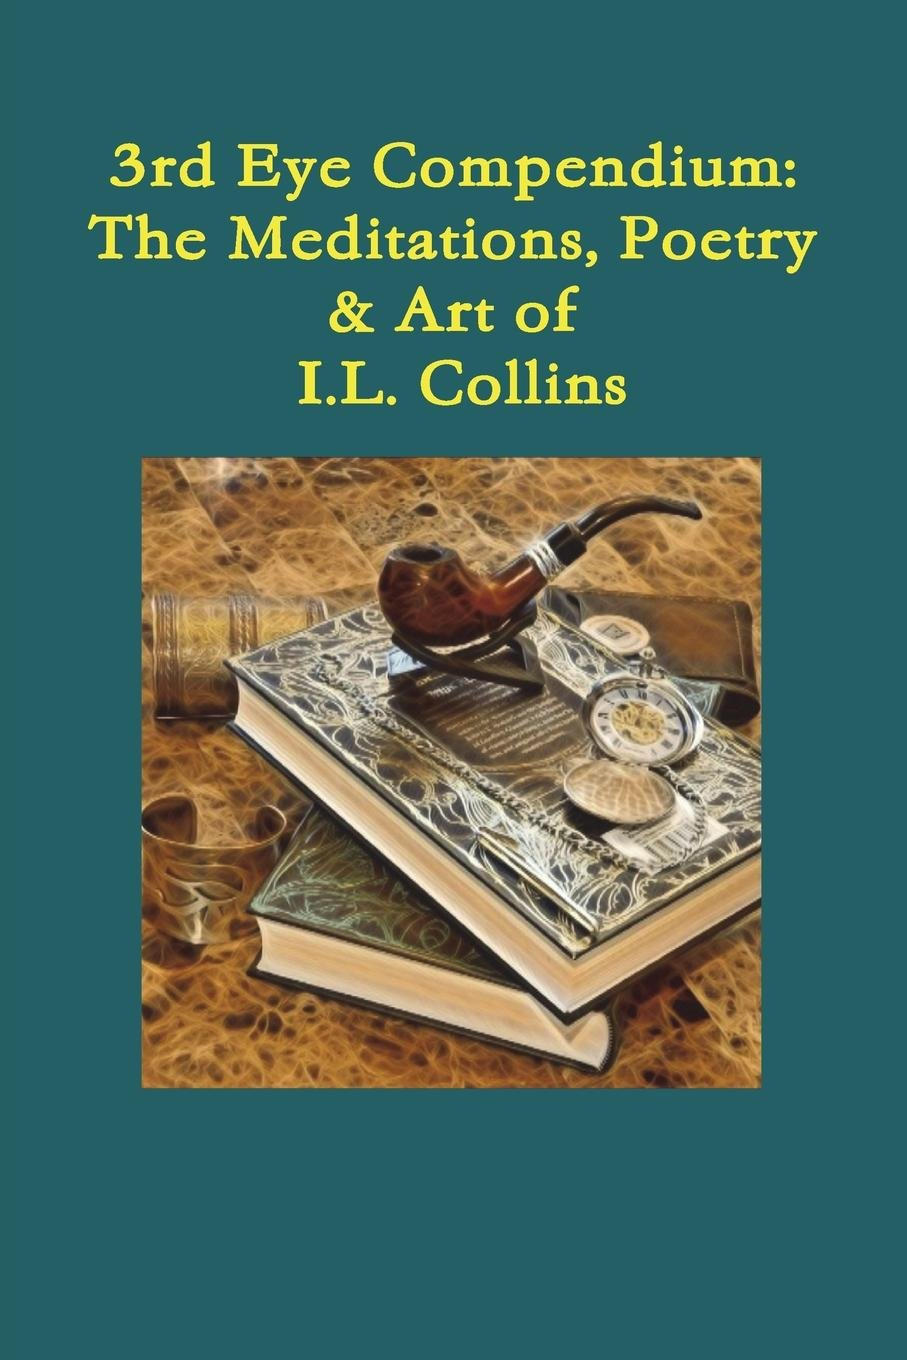 Third Eye Compendium: The Meditations, Poetry & Art of I.L. Collins ebook